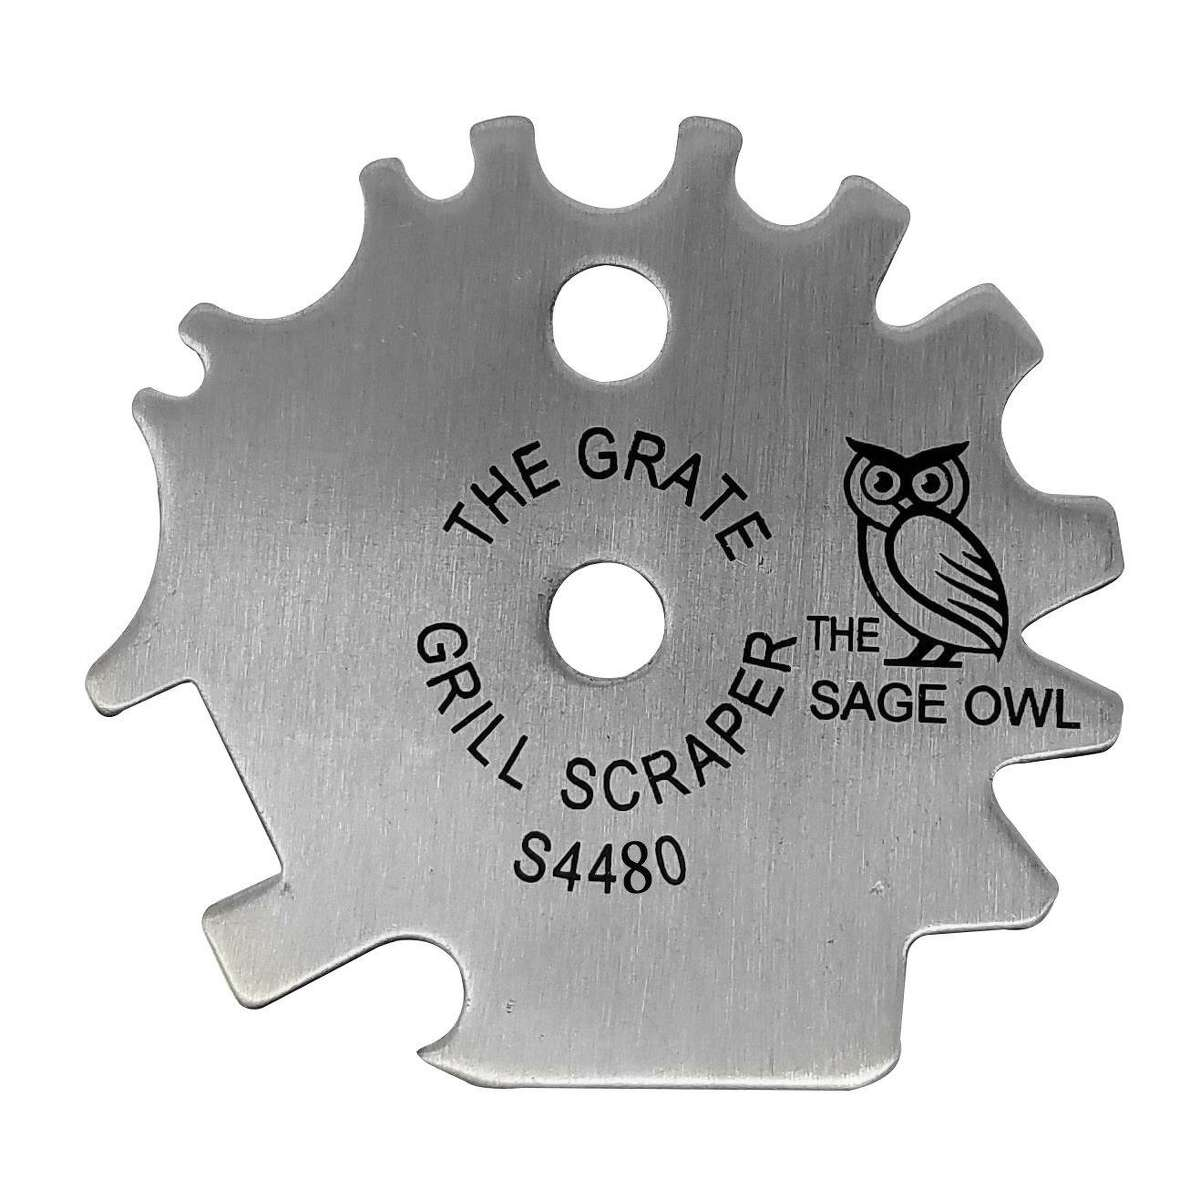 The Grate Grill Scraper by The Sage Owl